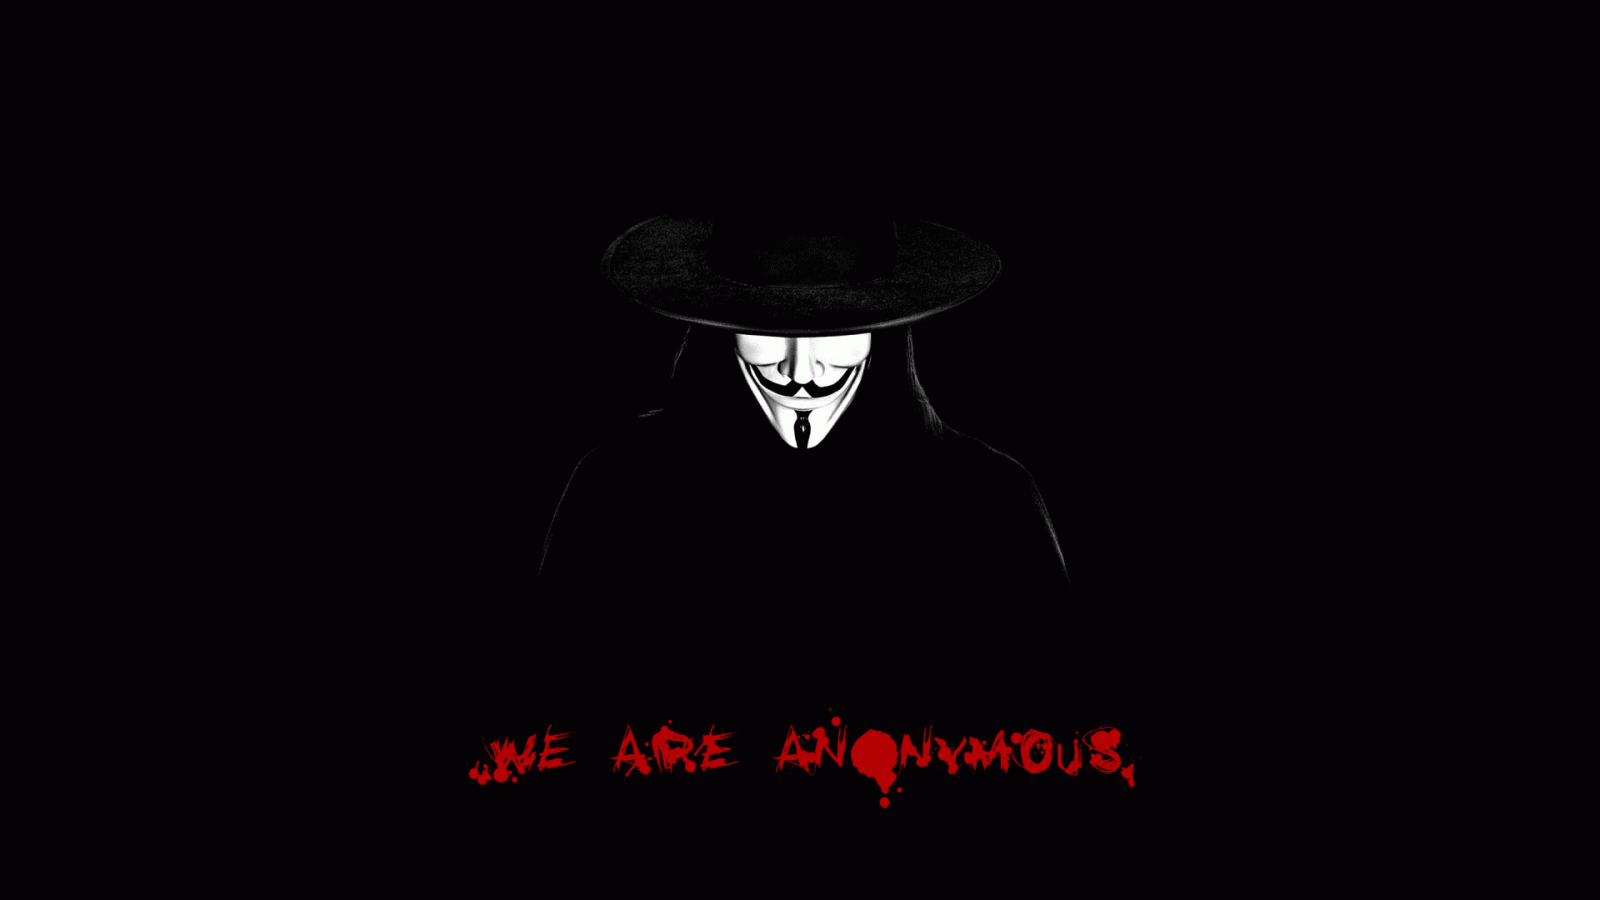 V For Vendetta Wallpaper Posted By Samantha Cunningham